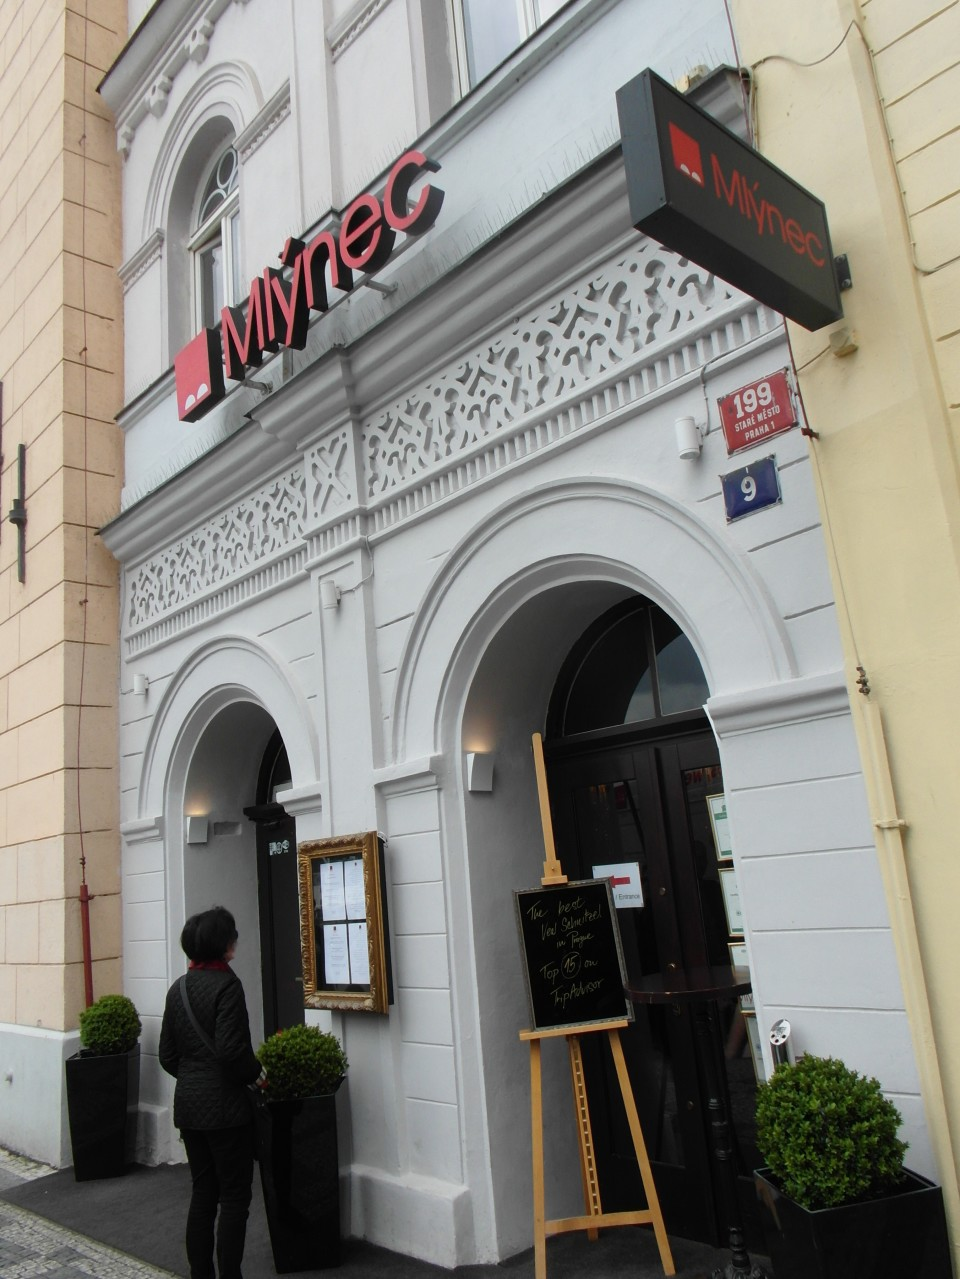 Mlynec Restaurant in the old town district of Prague